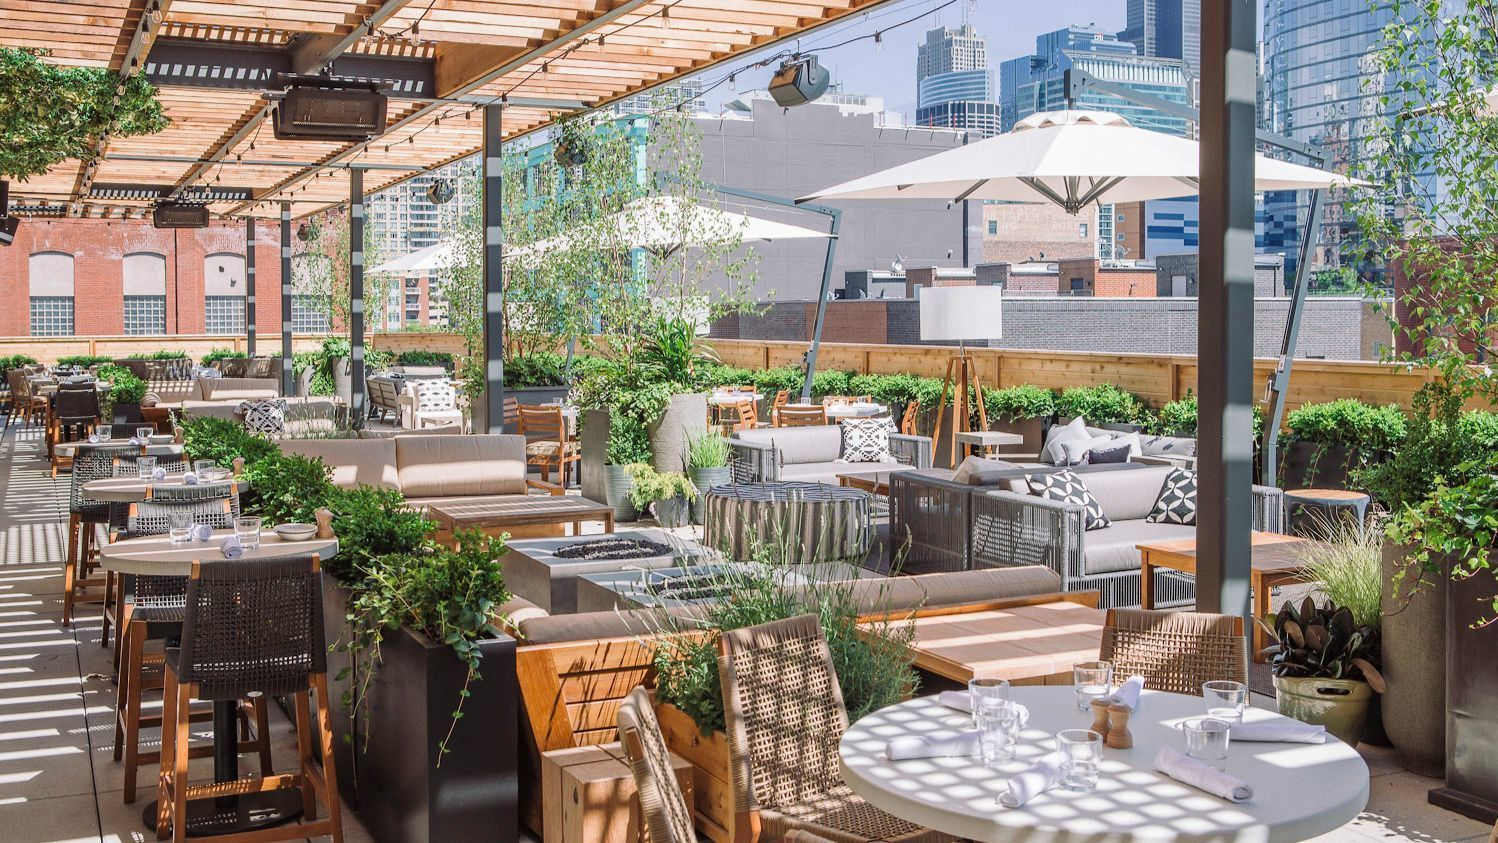 Updated 130 Plus Chicago Patios And Rooftops For Summer Eating Drinking Tribune